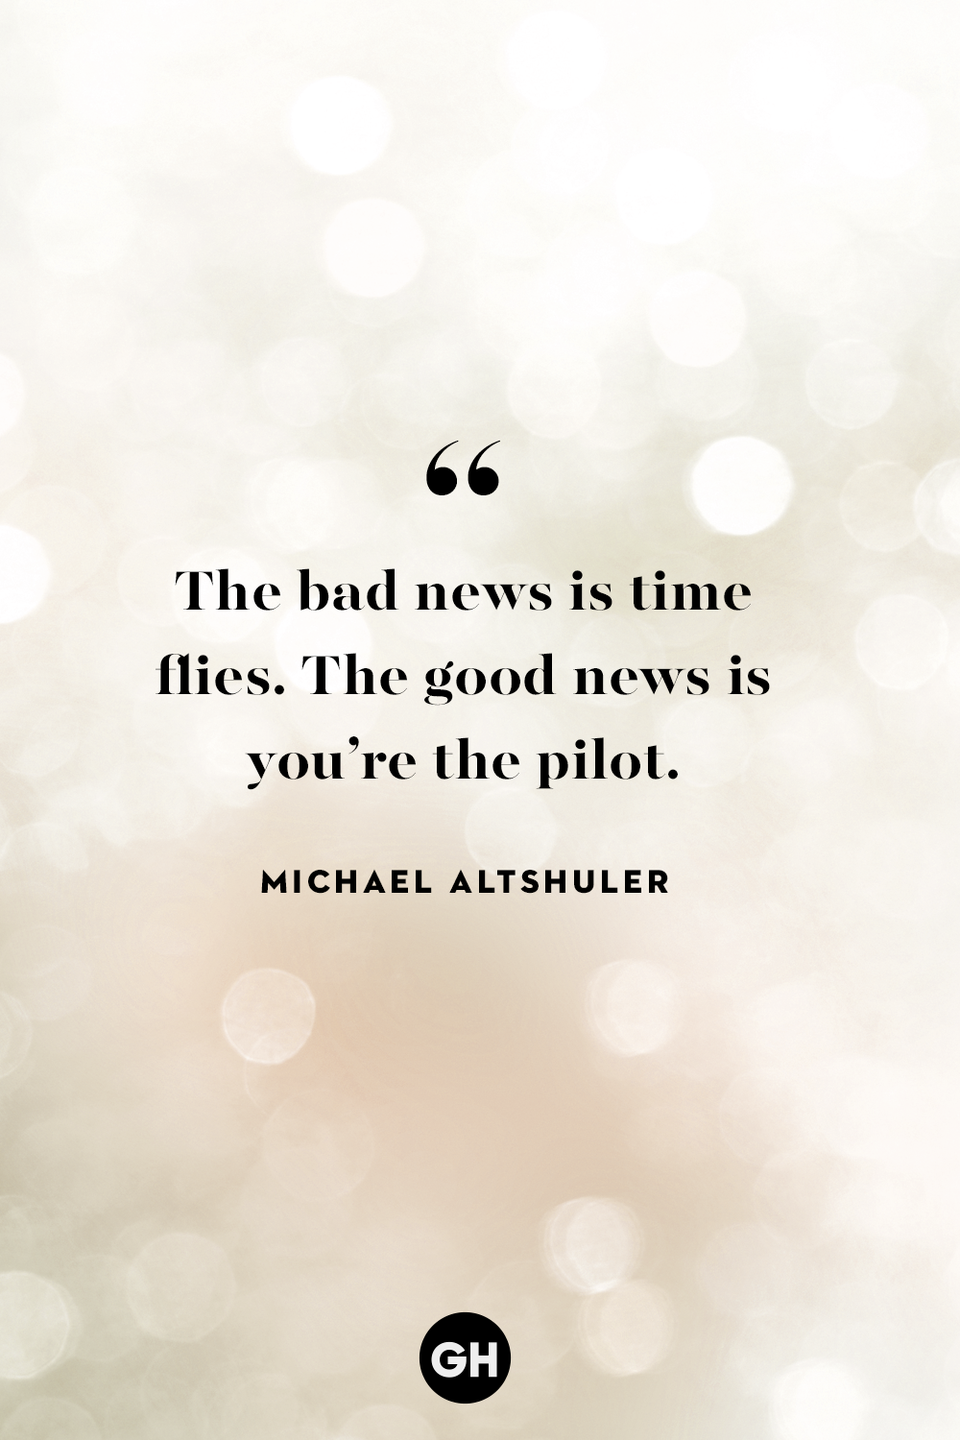 <p>The bad news is time flies. The good news is you're the pilot.</p>